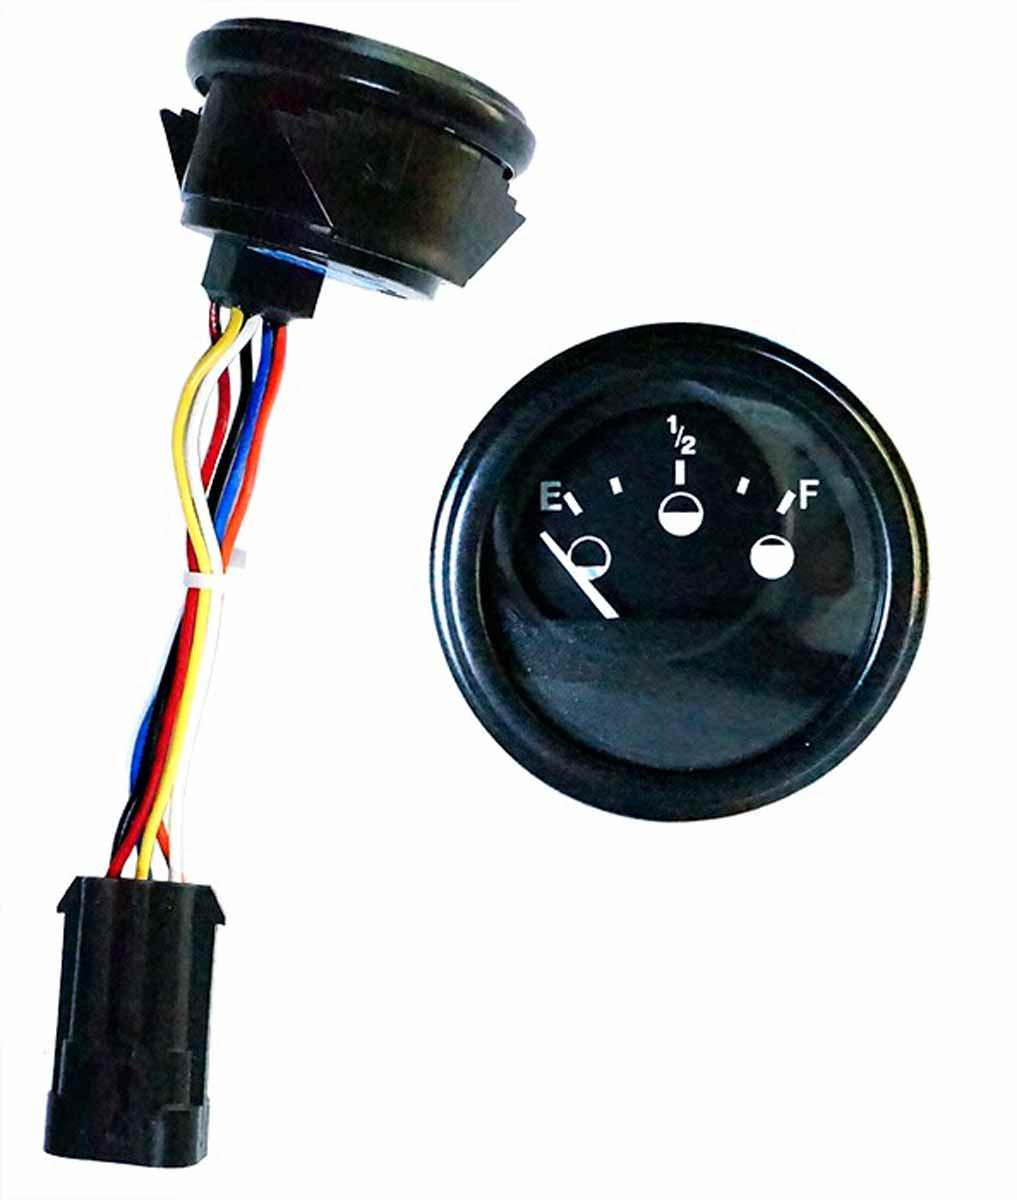 [TBQL_4184]  State Of Charge Meter For EZGO RXV Golf Carts | Images Of Ez Go Wiring Diagram Battery Indicator |  | 3 Guys Golf Carts